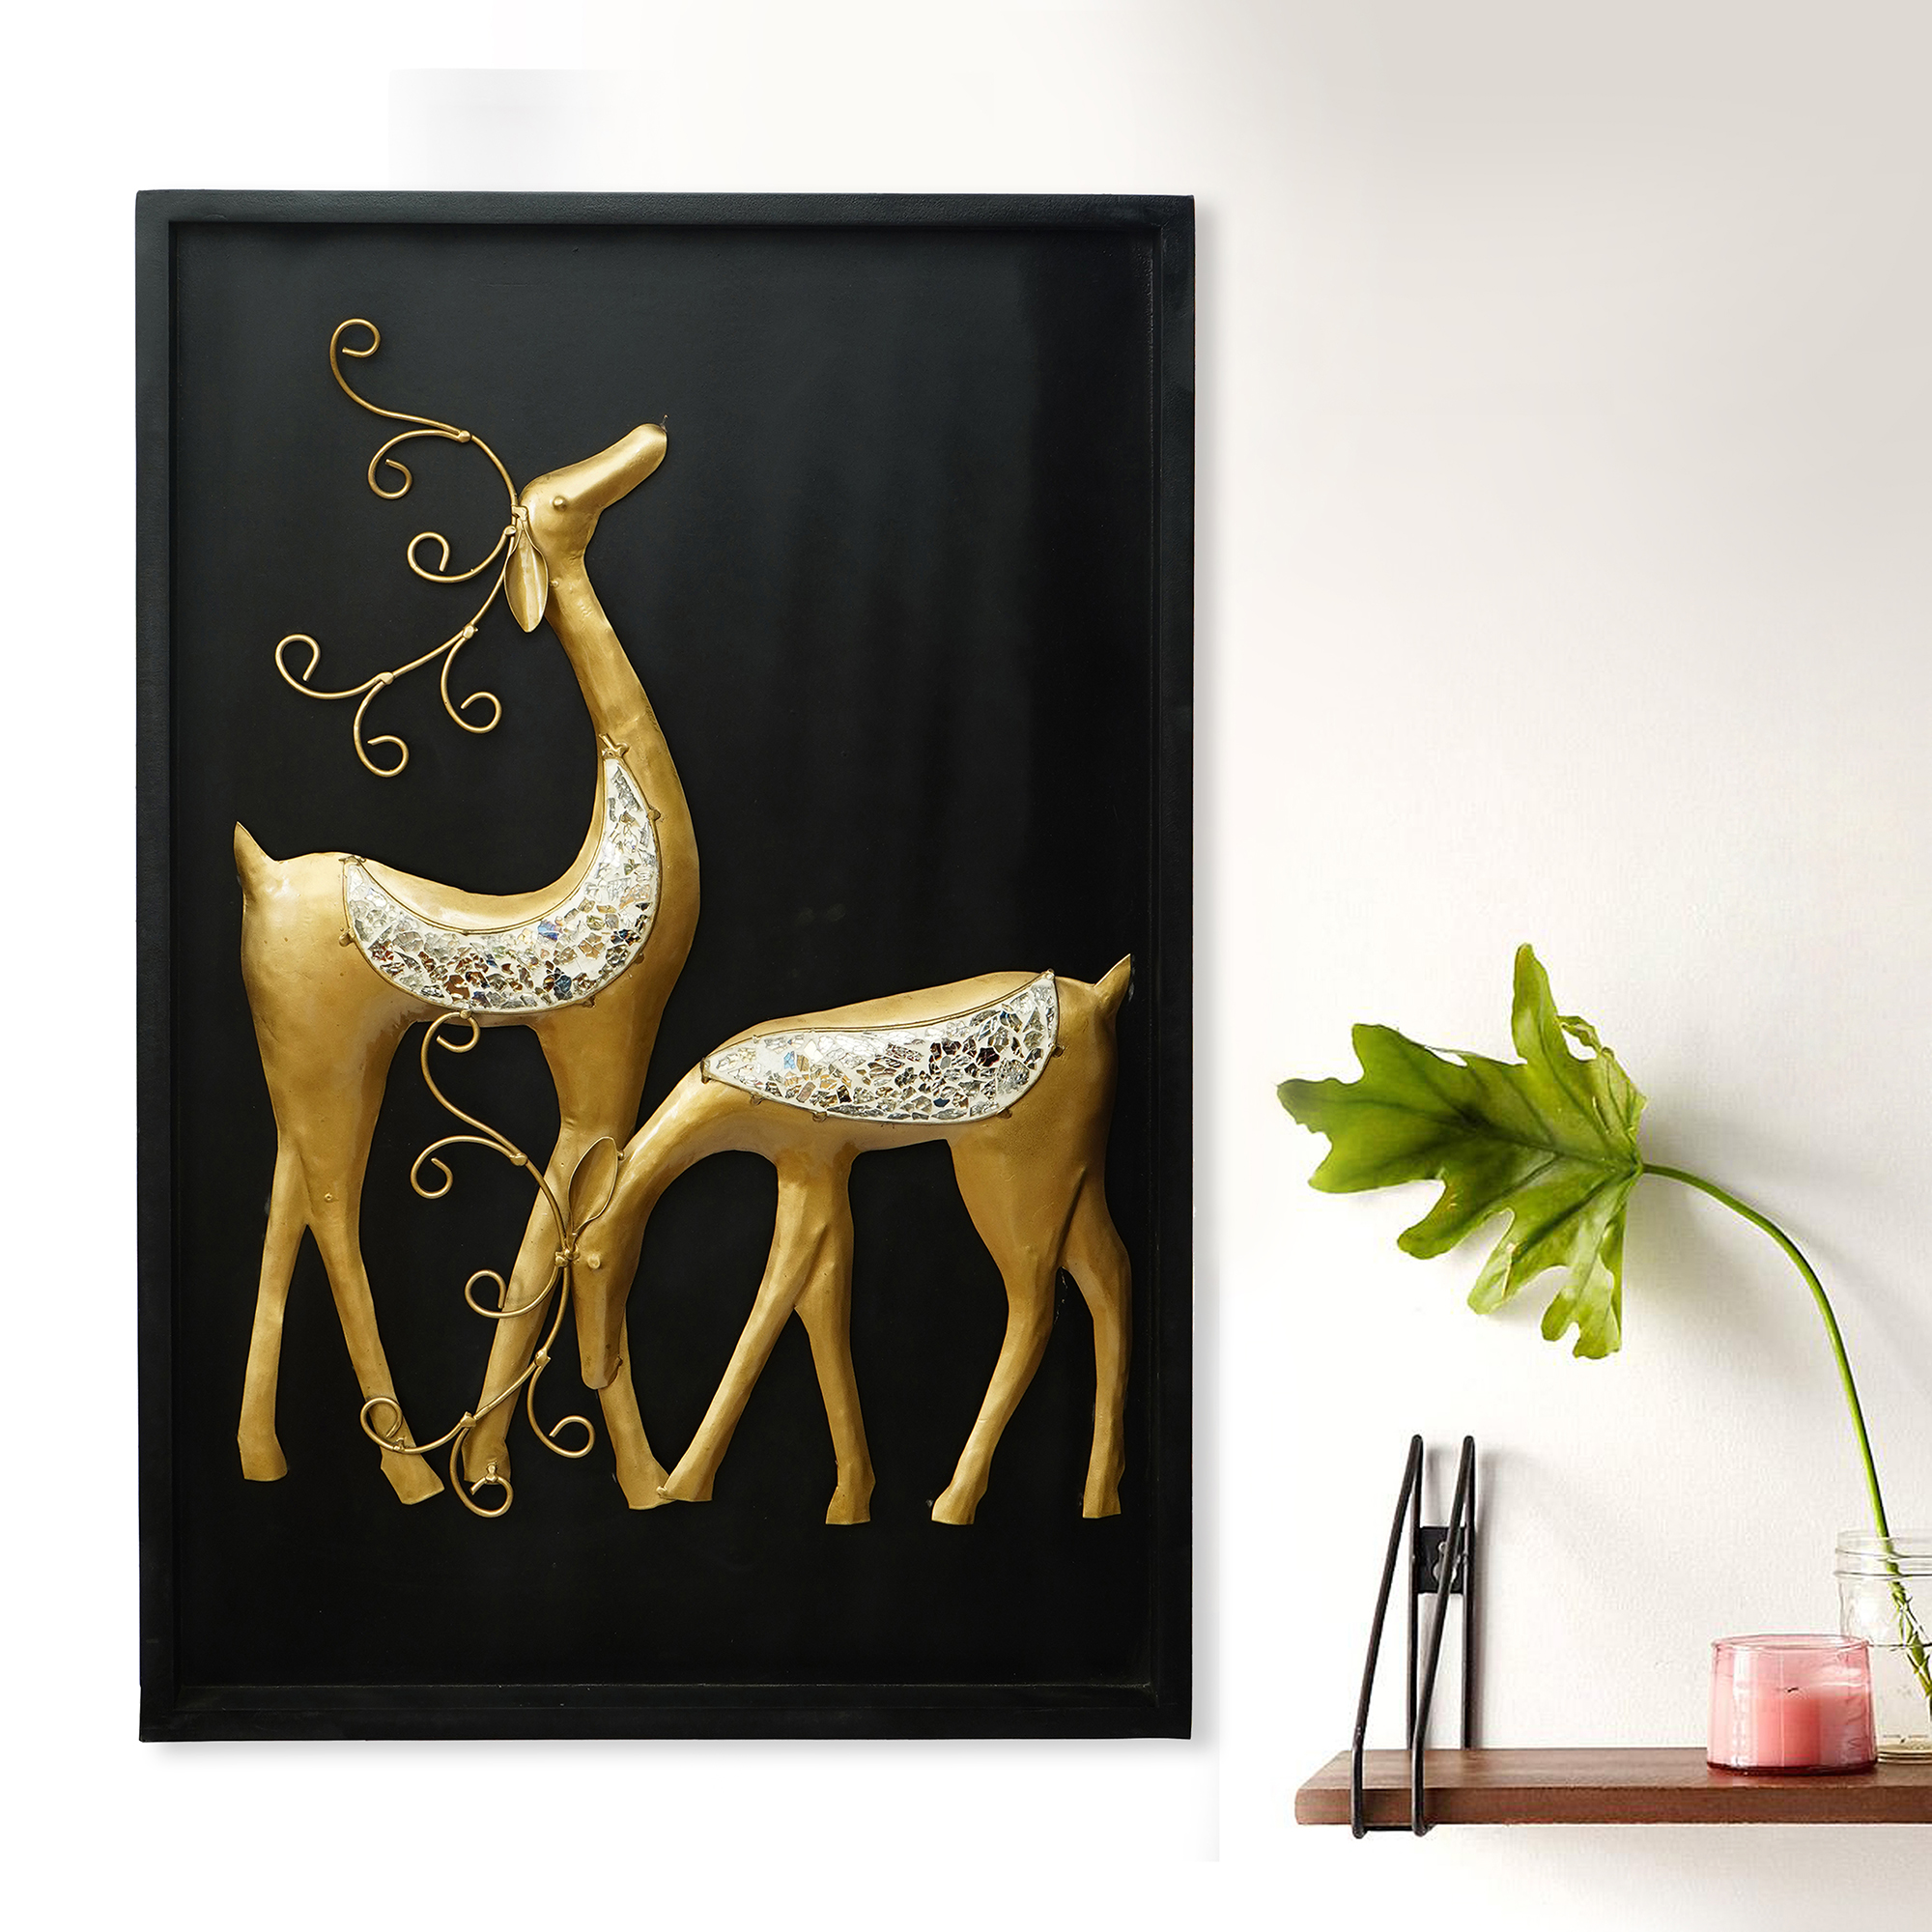 Golden Deer with Wooden Frame Handcrafted Wall Hanging Indian Home Decor